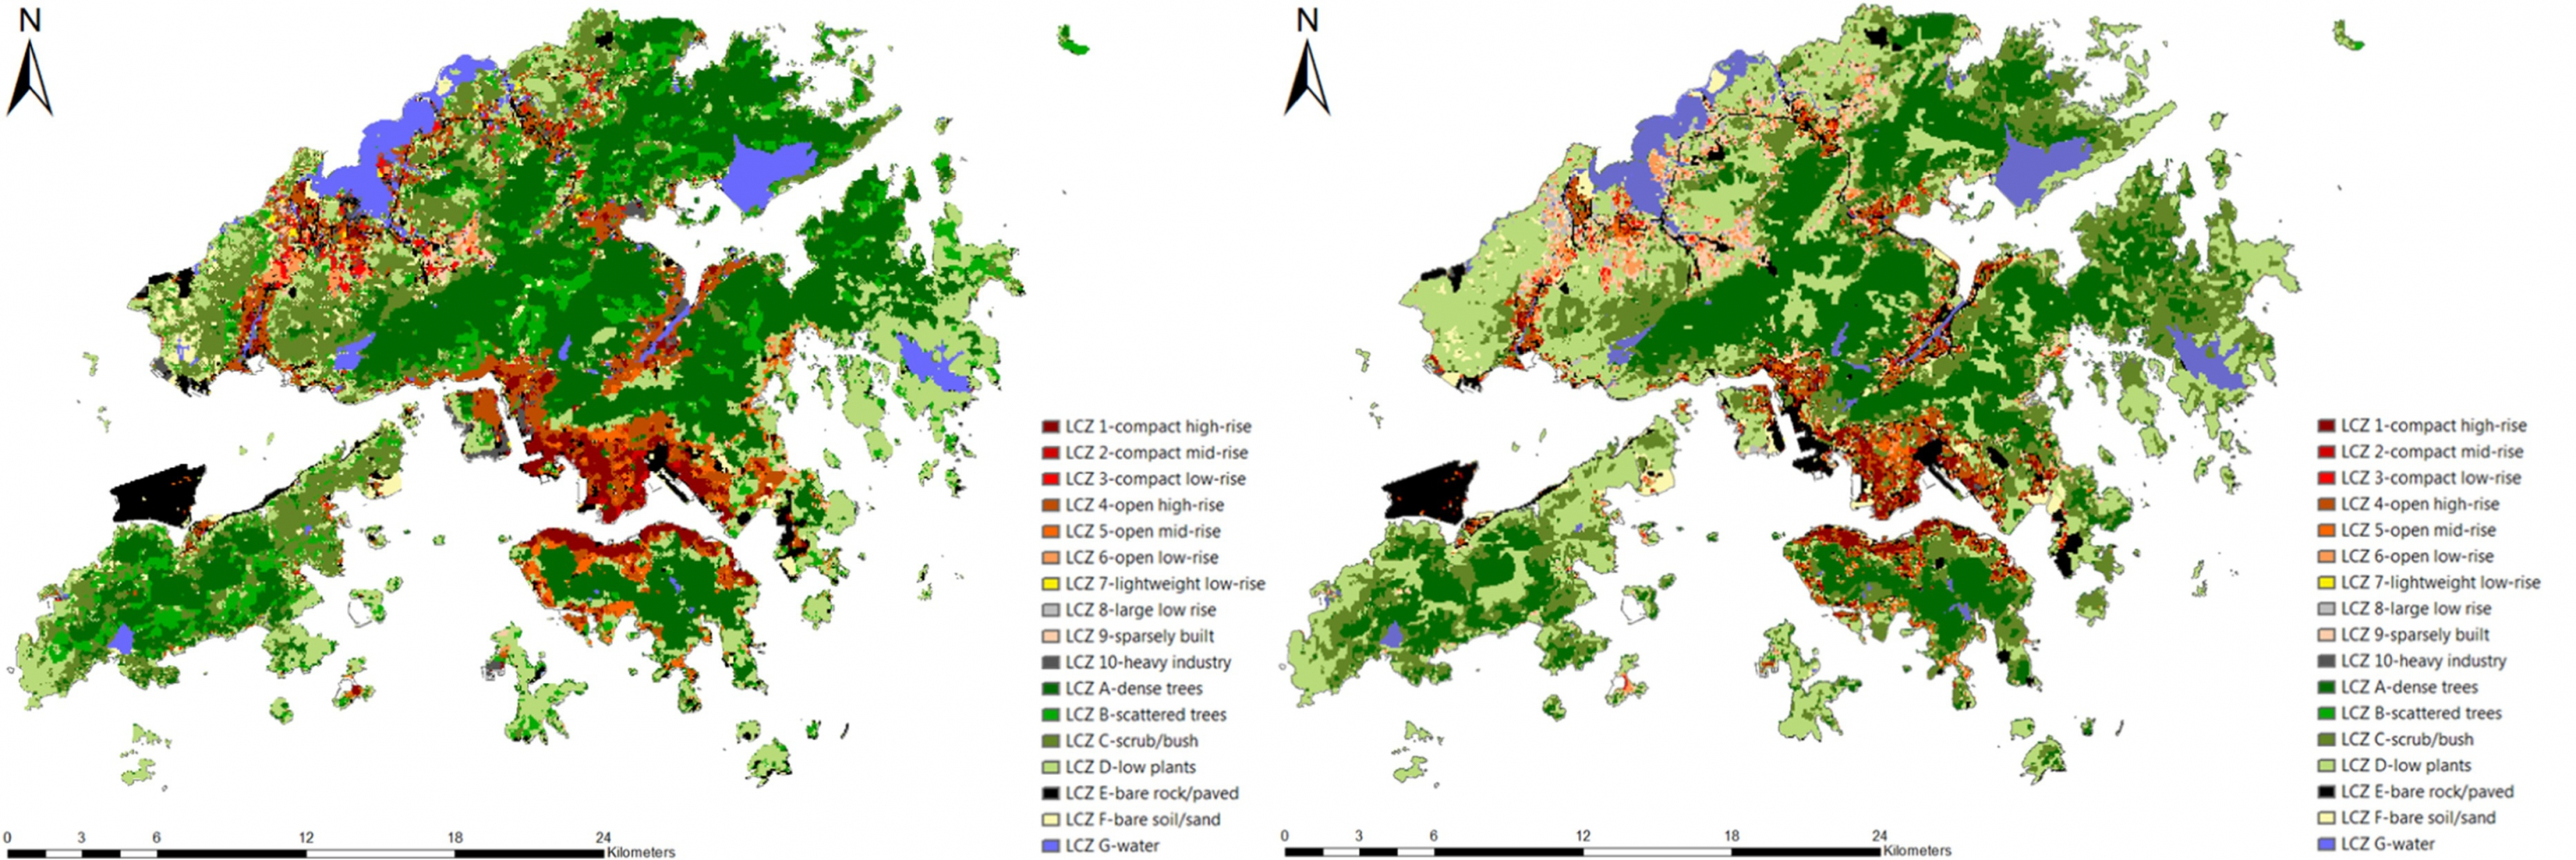 Mapping the local climate zones in Hong Kong using different methods.